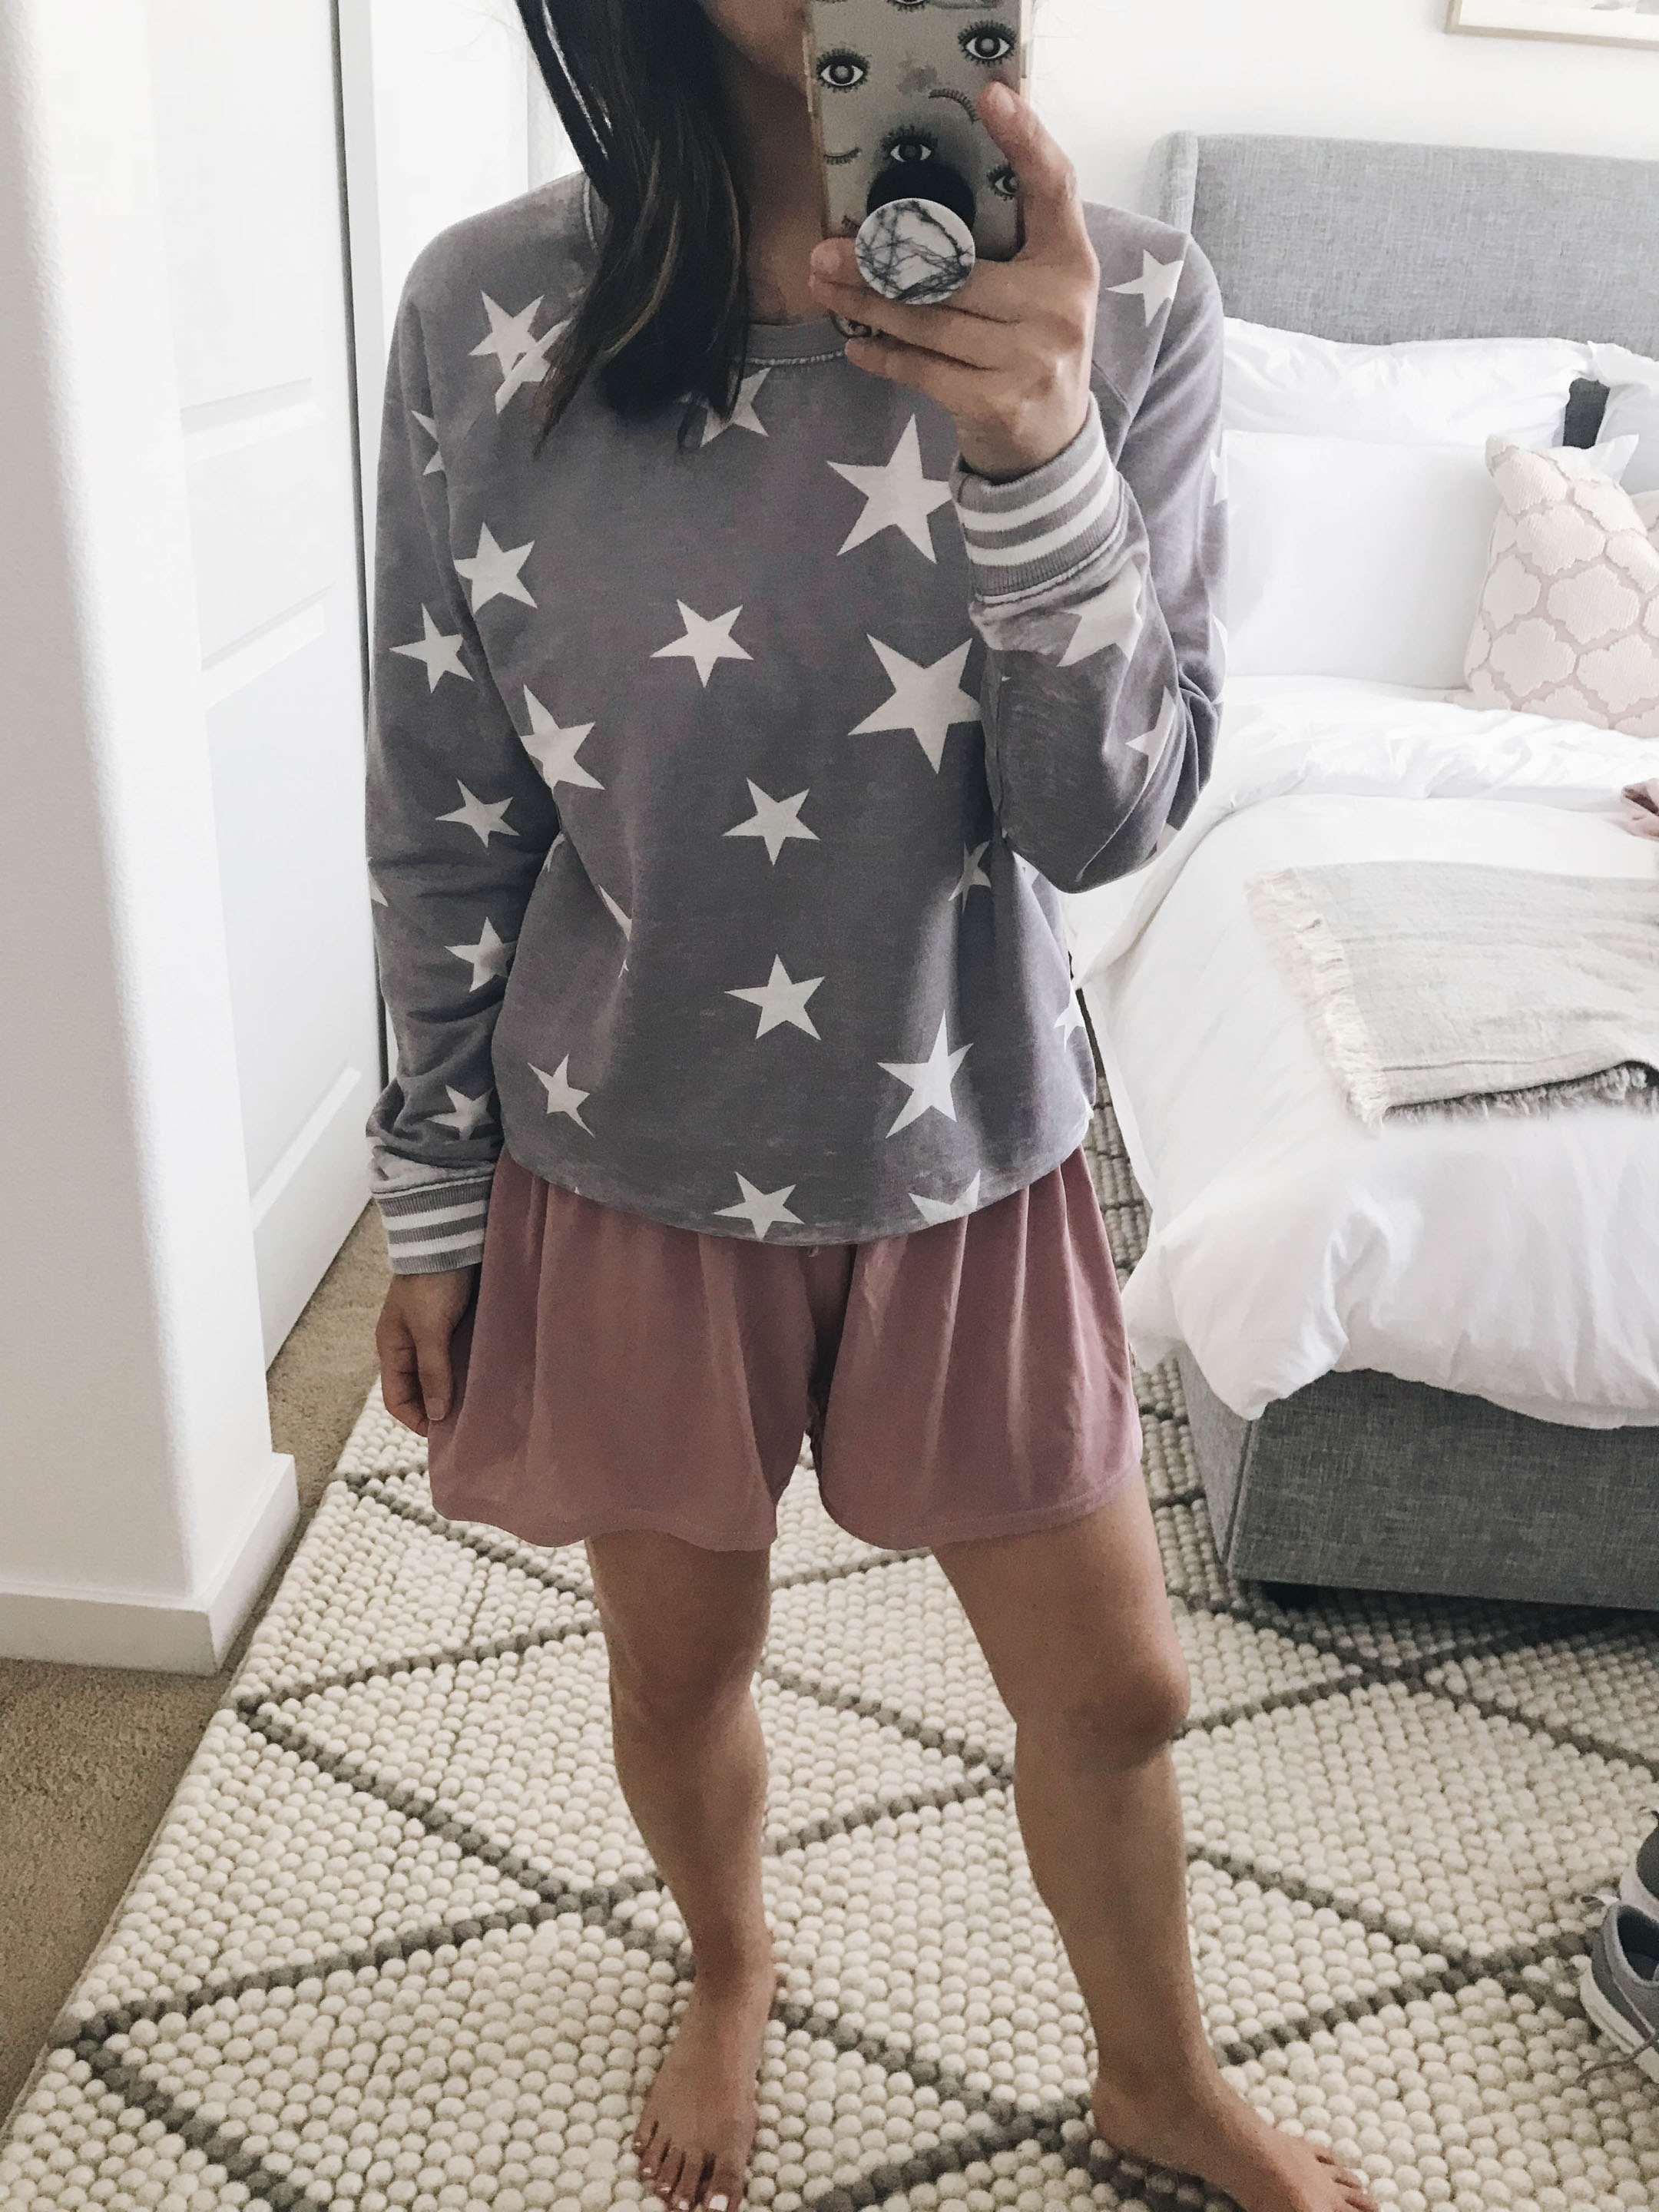 Honeydew star sweatshirt 1